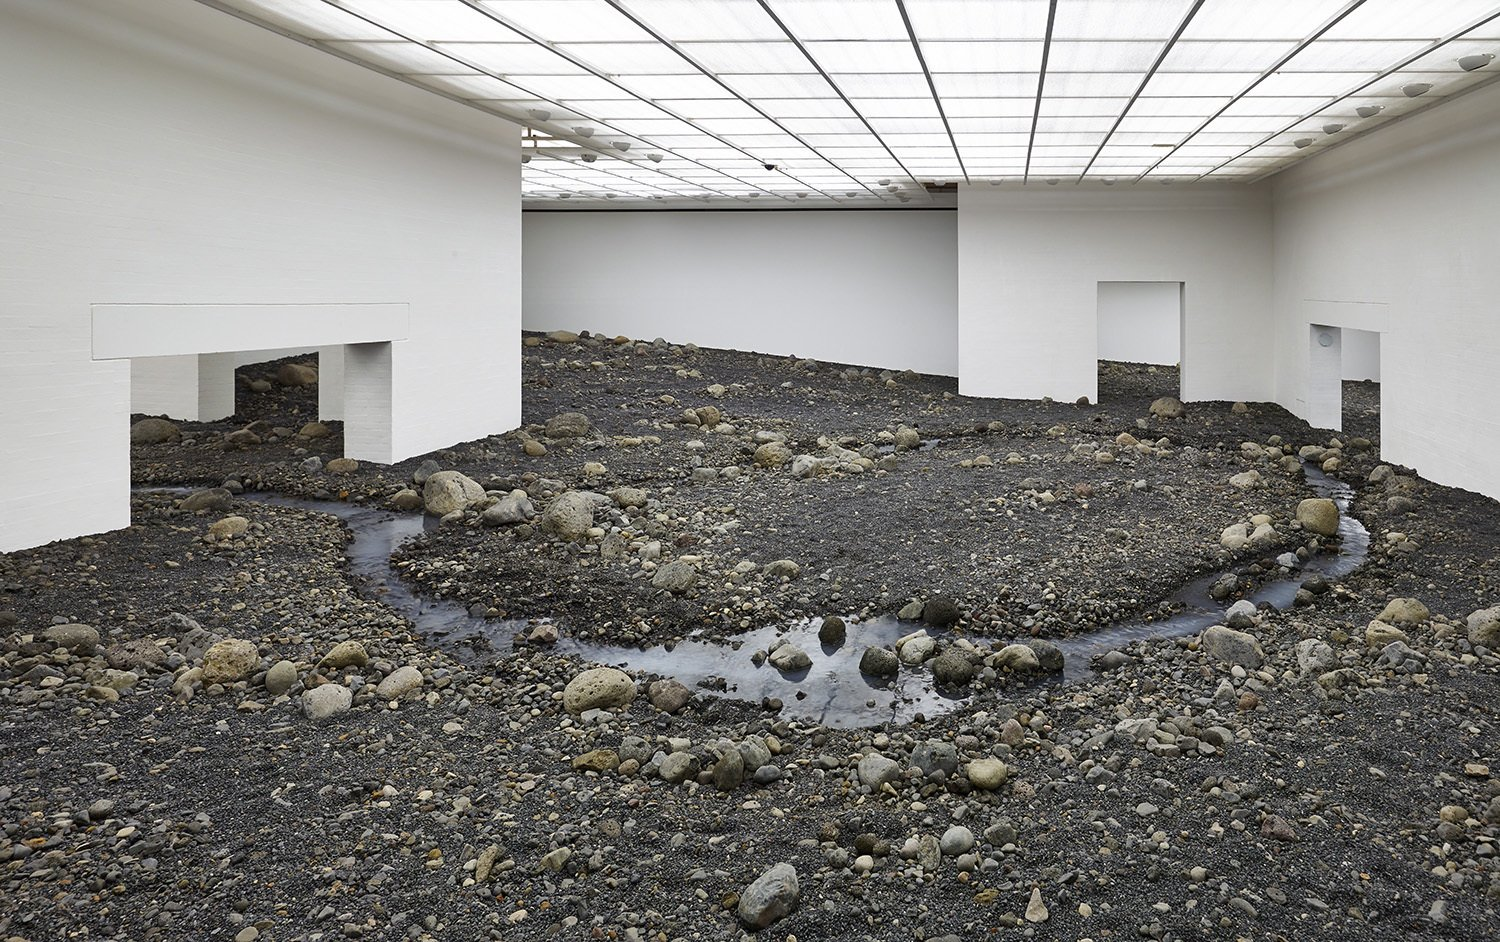 """Riverbed,"" Olafur Eliasson, 2014.  This site-specific installation for the Louisiana Museum of Modern Art in Humlebæk, Denmark, creates a complete rocky enviornment inside the white-walled gallery.  Eight of Our Favorite Works by Artist Olafur Eliasson by Allie Weiss"